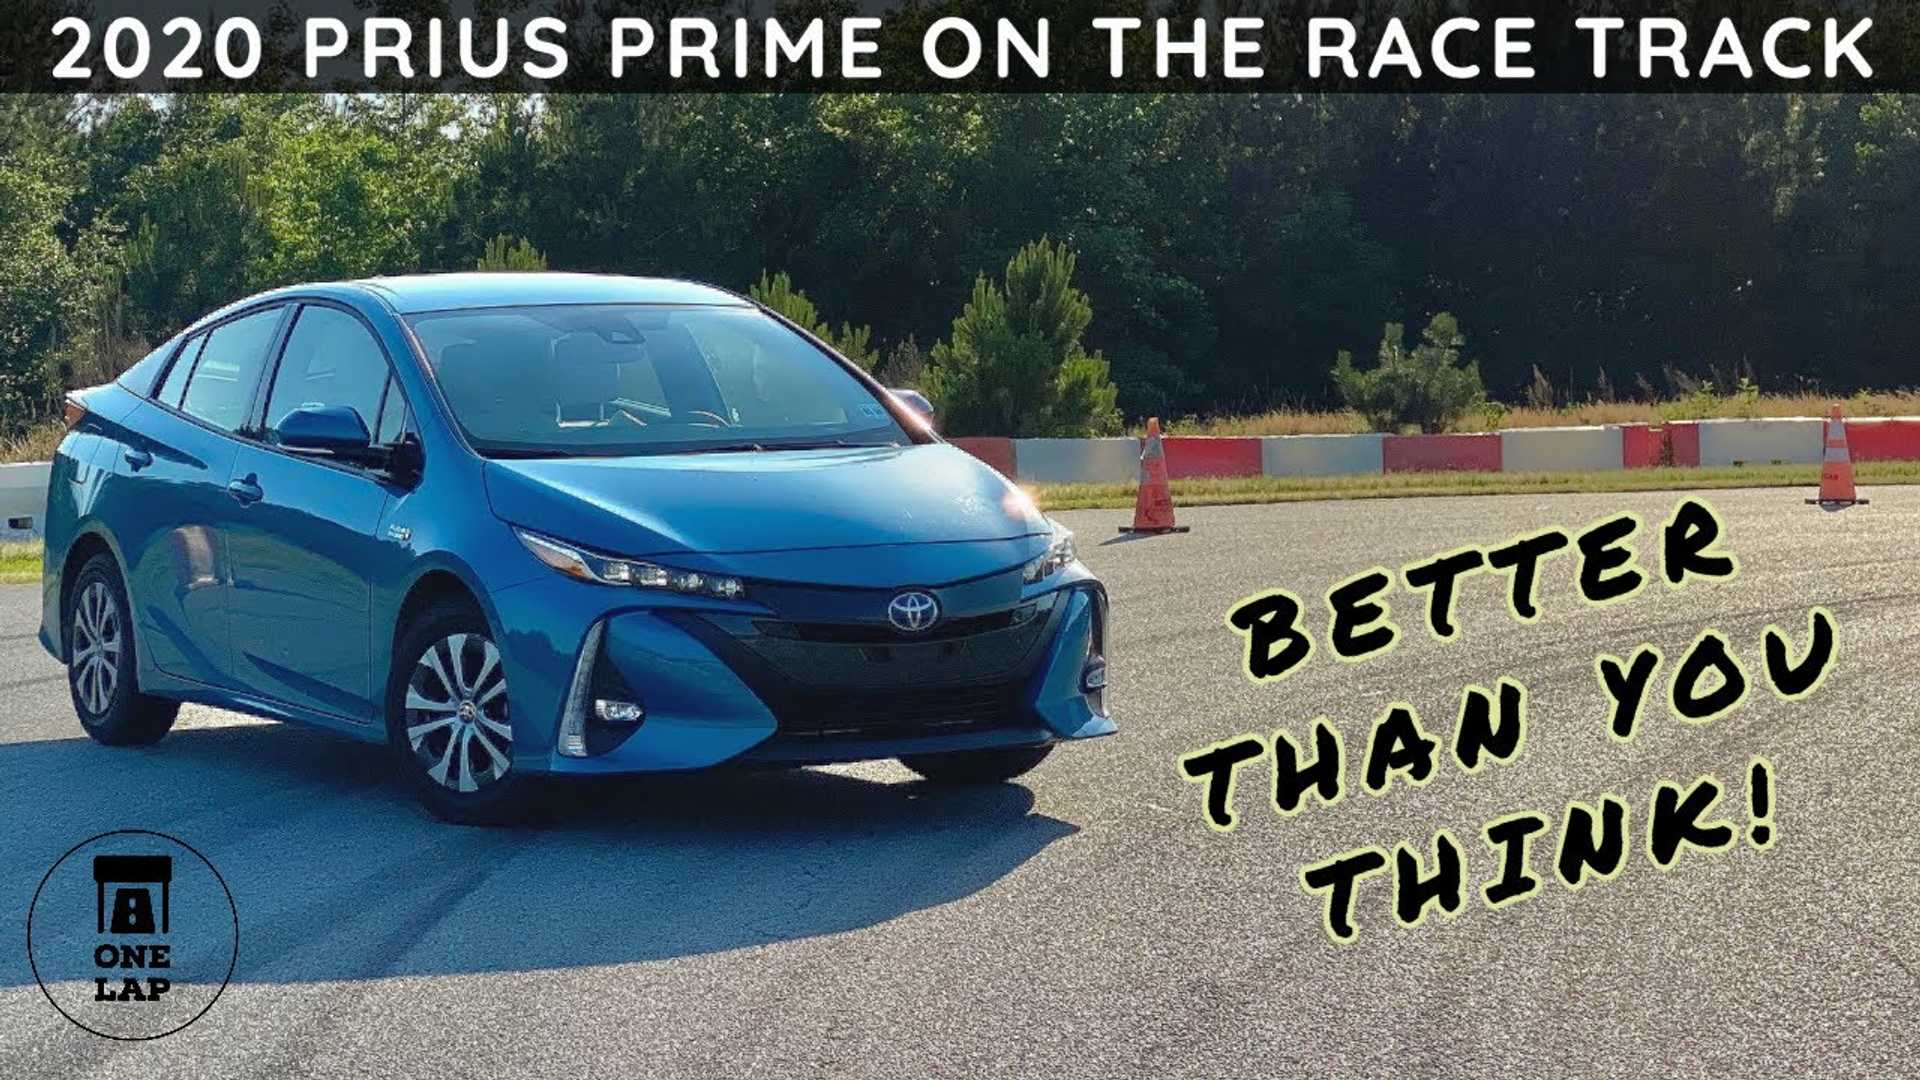 Can The Toyota Prius Prime Surprise In One Lap?